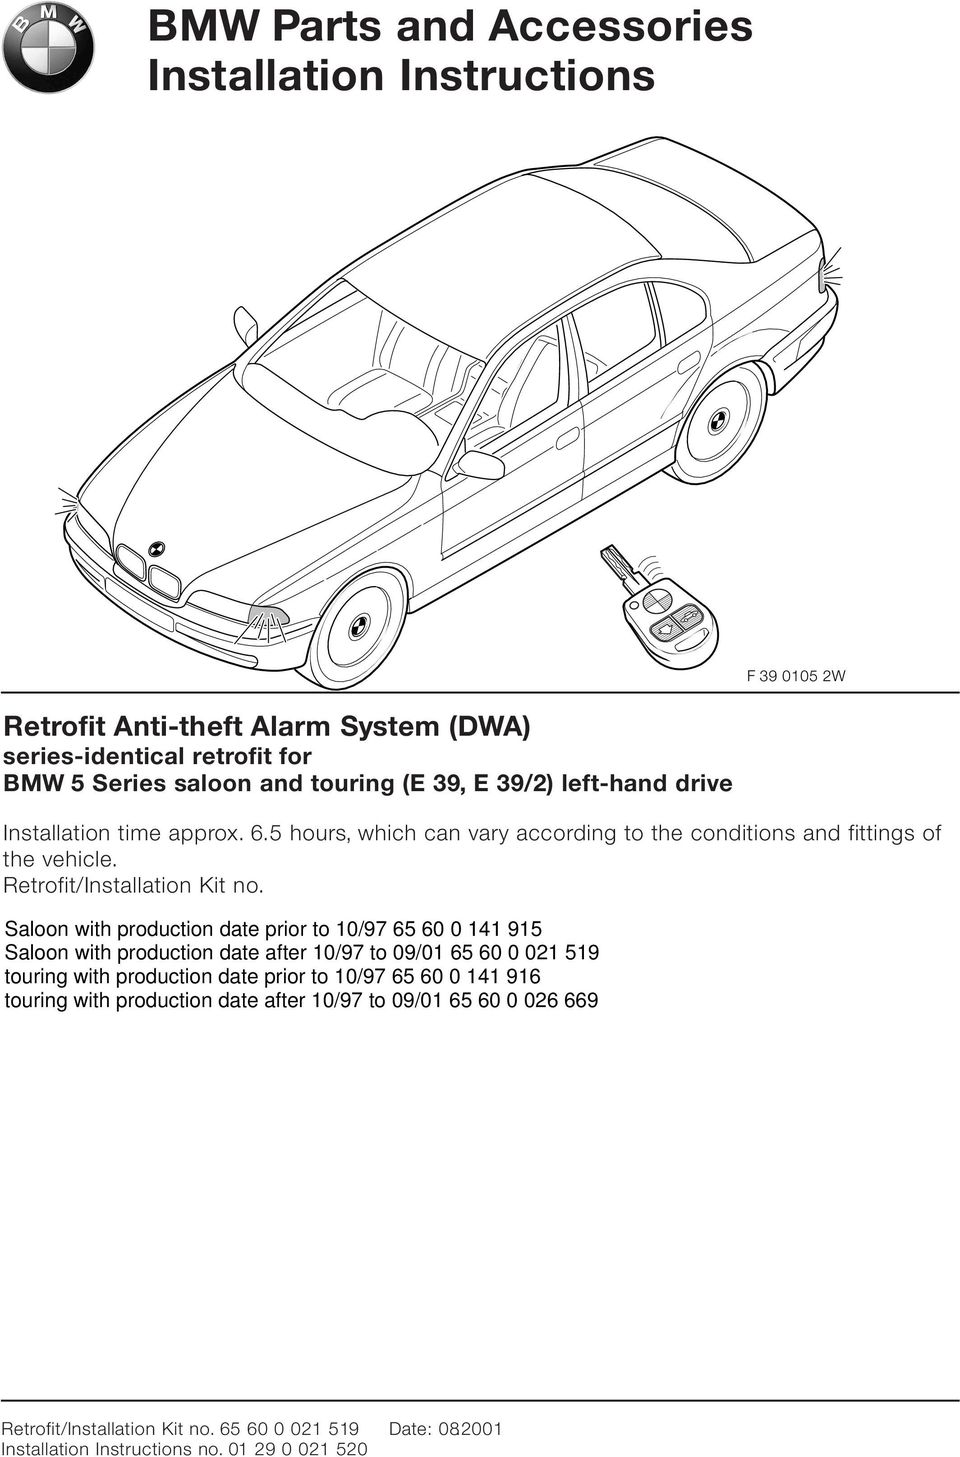 Bmw Parts And Accessories Installation Instructions Pdf 2011 R1200rt Wiring Diagram Time Approx 6